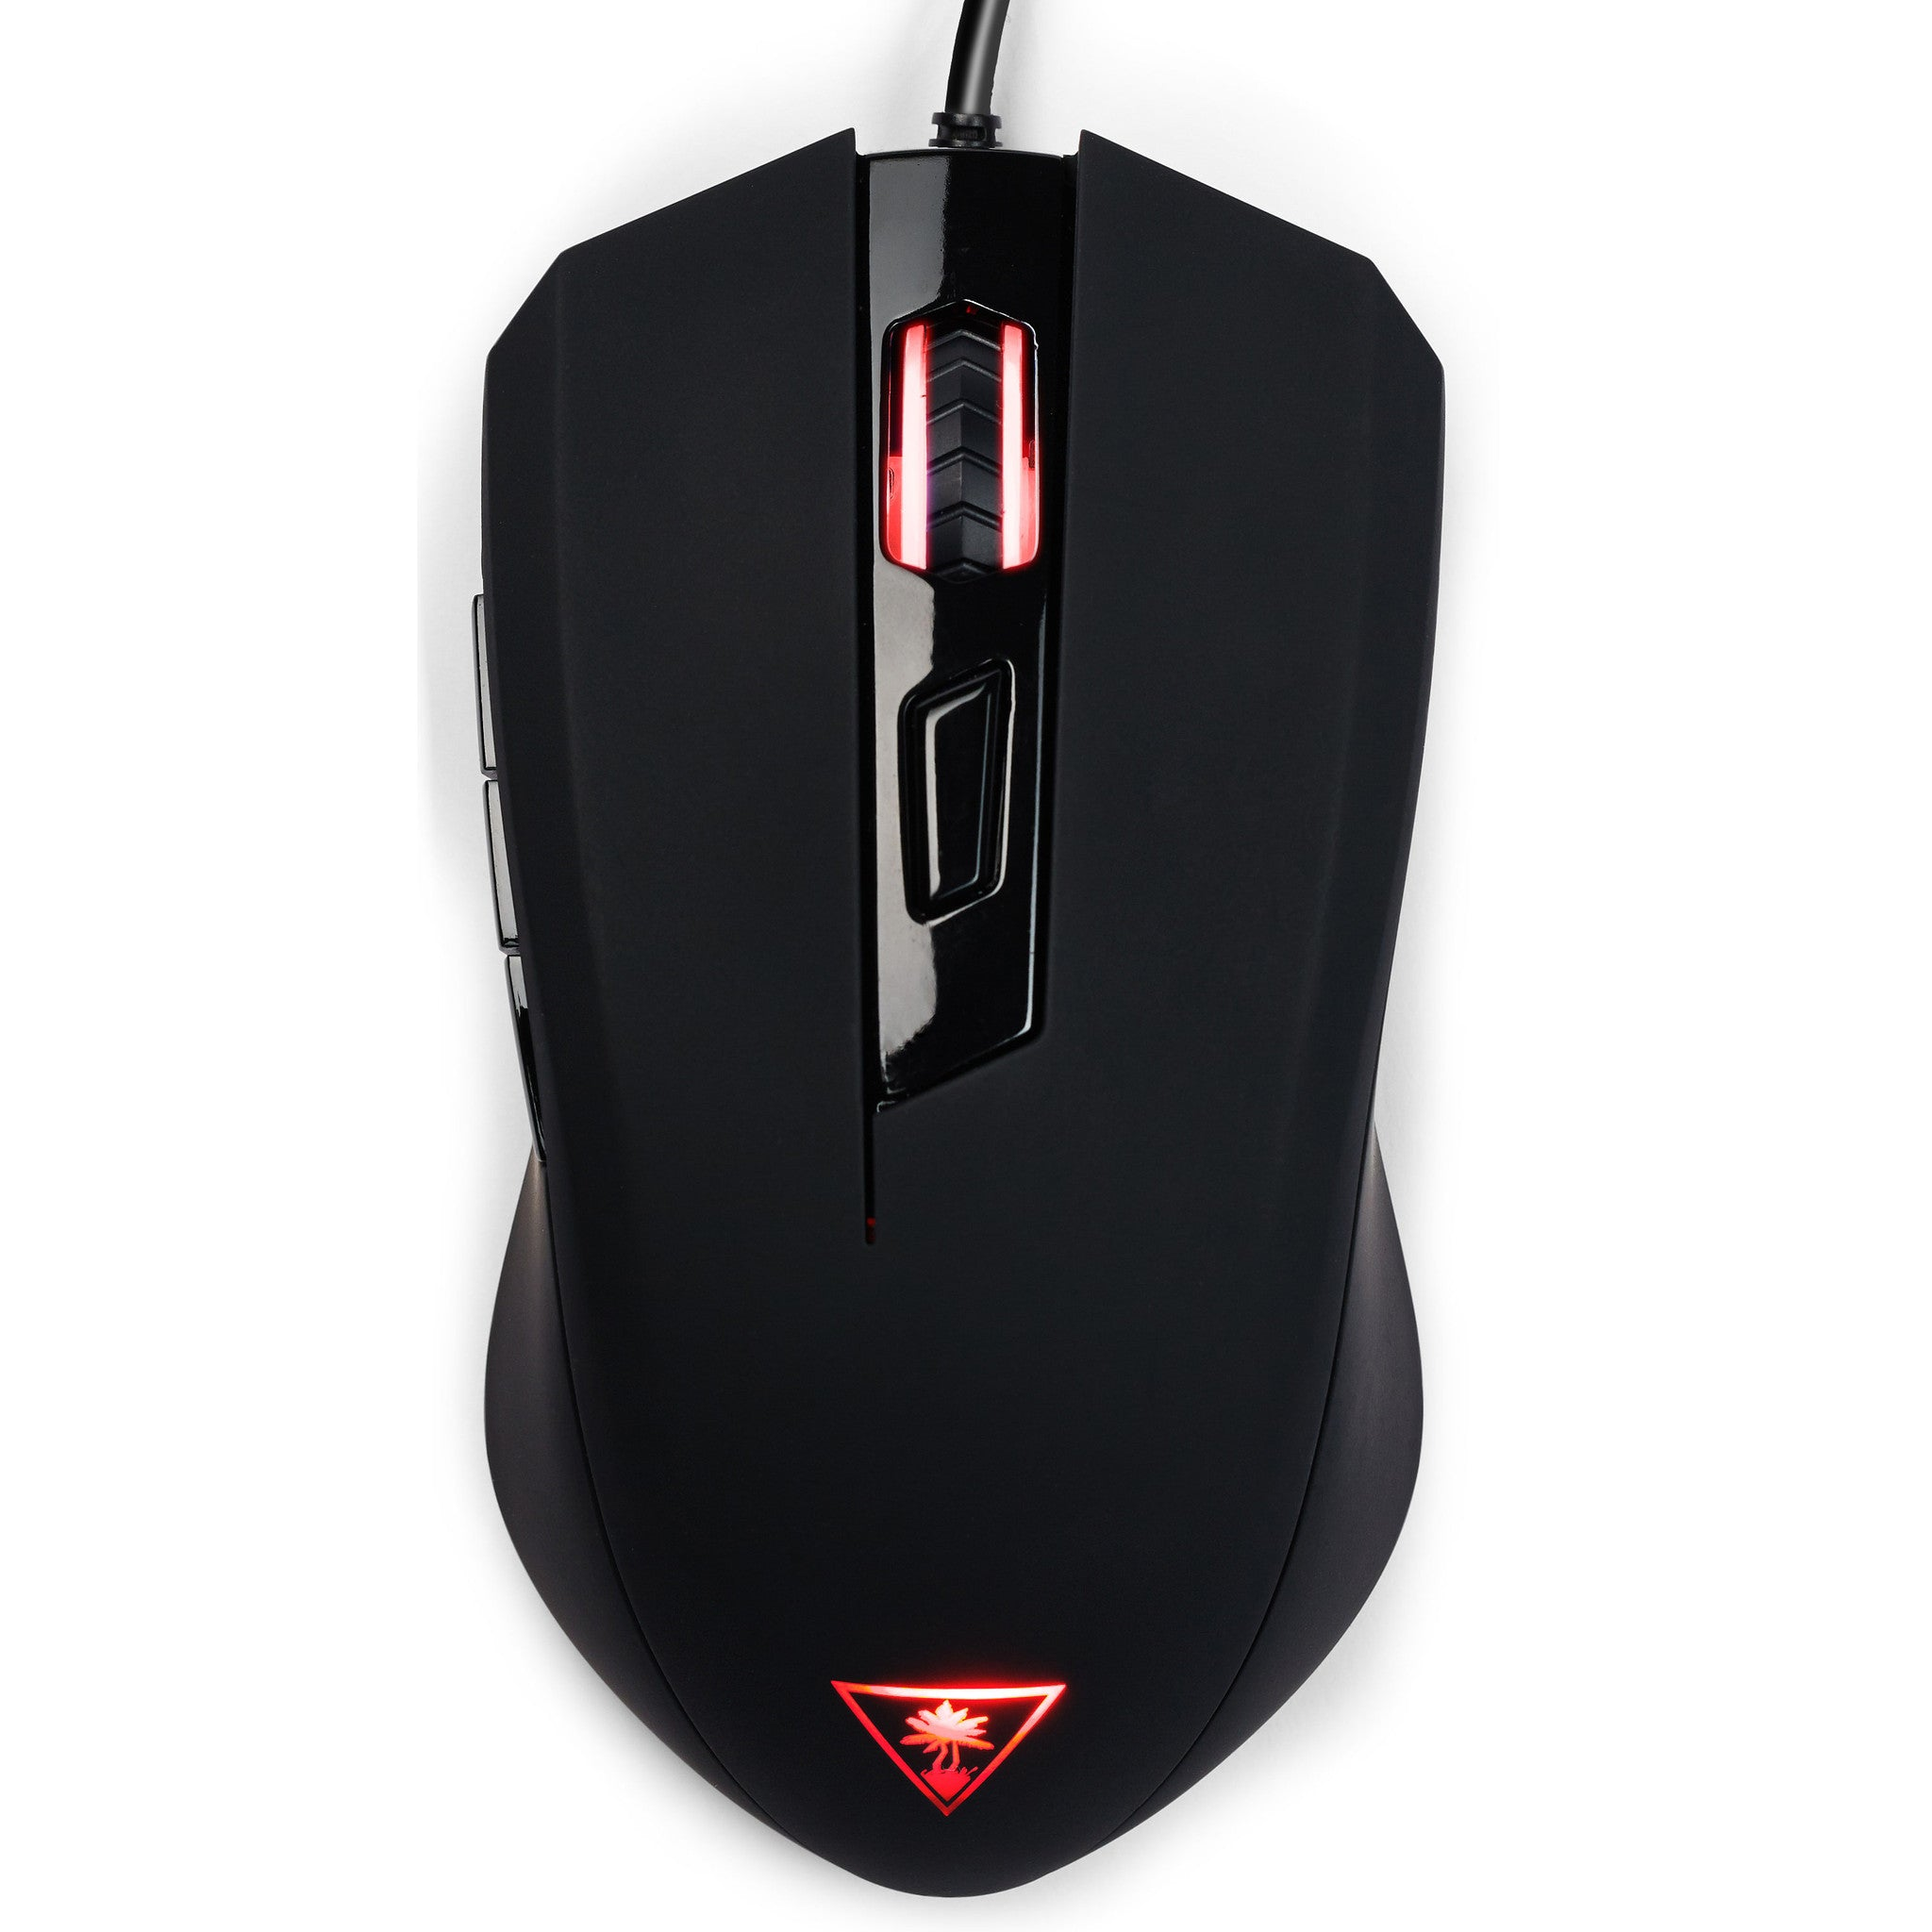 Turtle Beach - Grip 500 Gaming Mouse